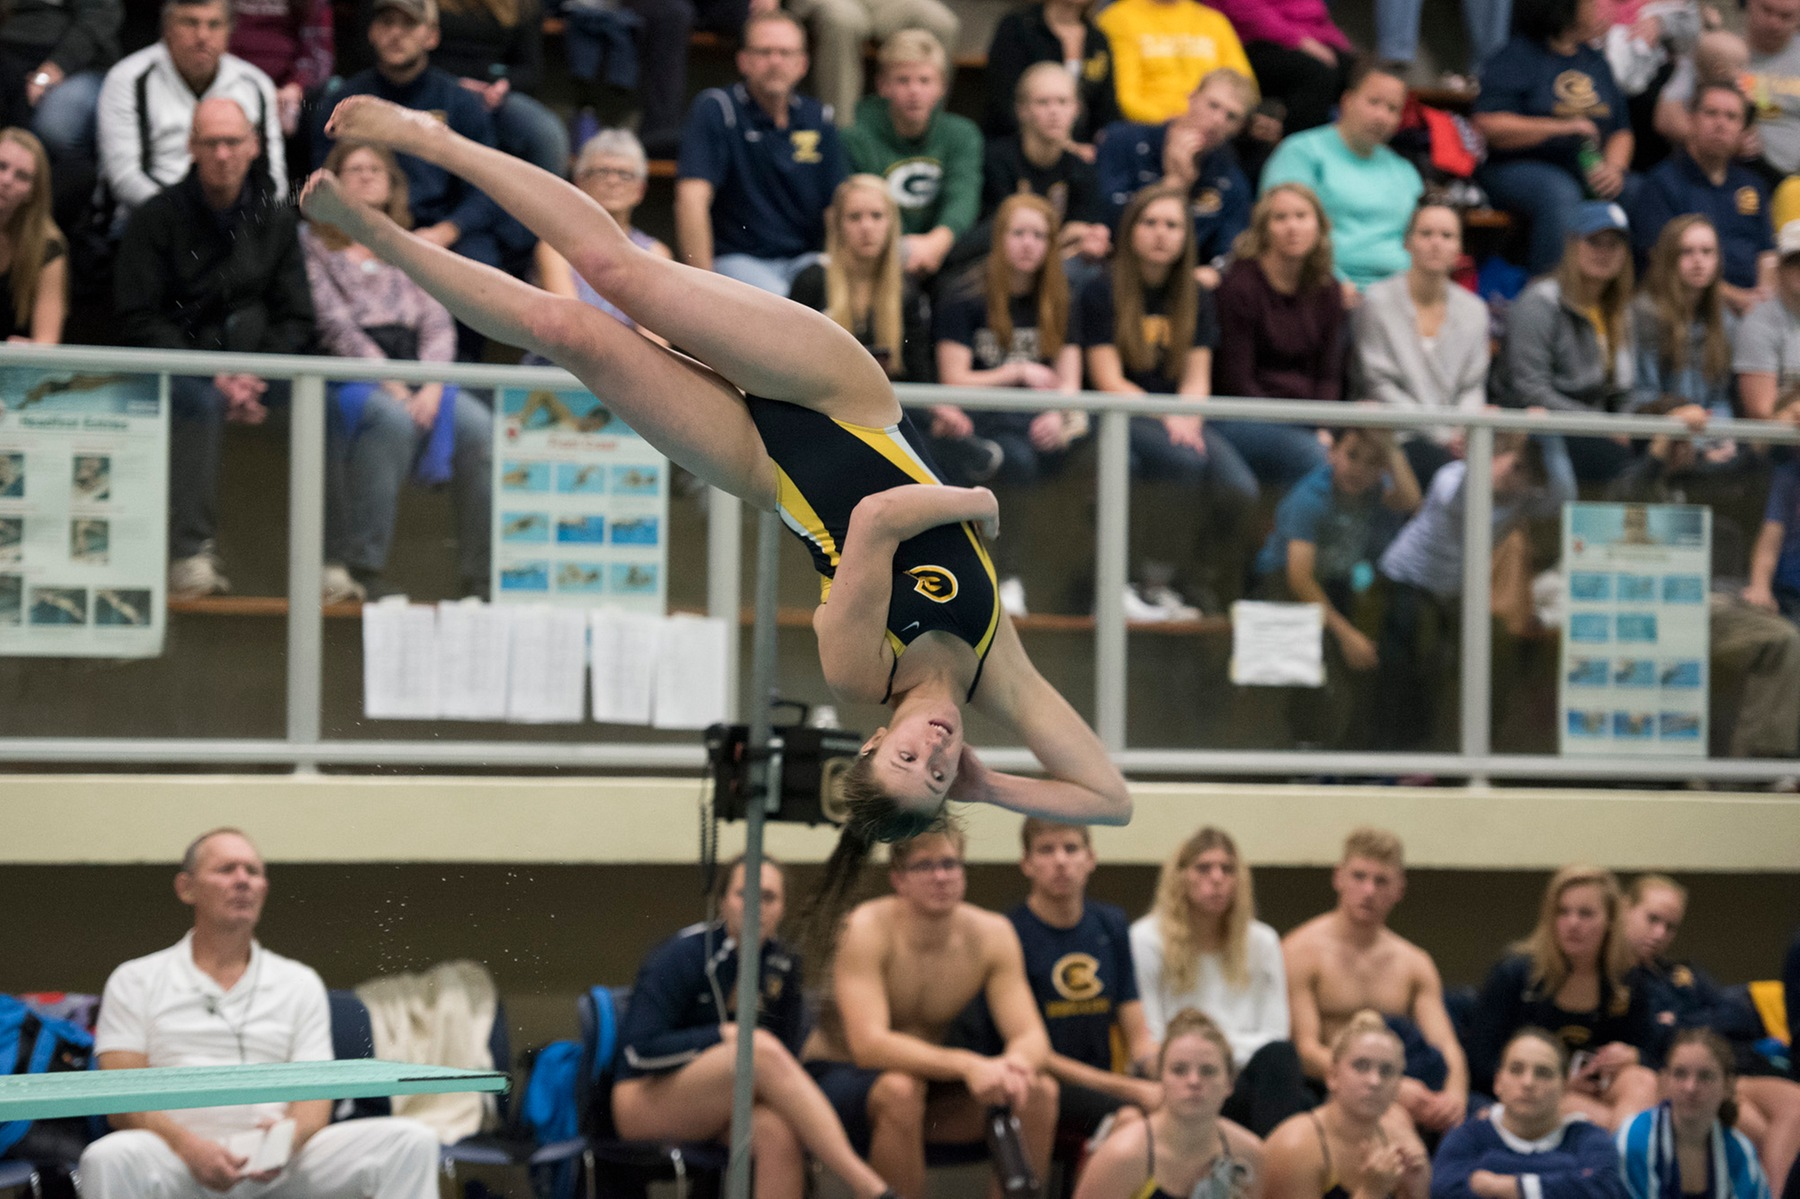 Blugold Swimming & Diving takes down Warhawks